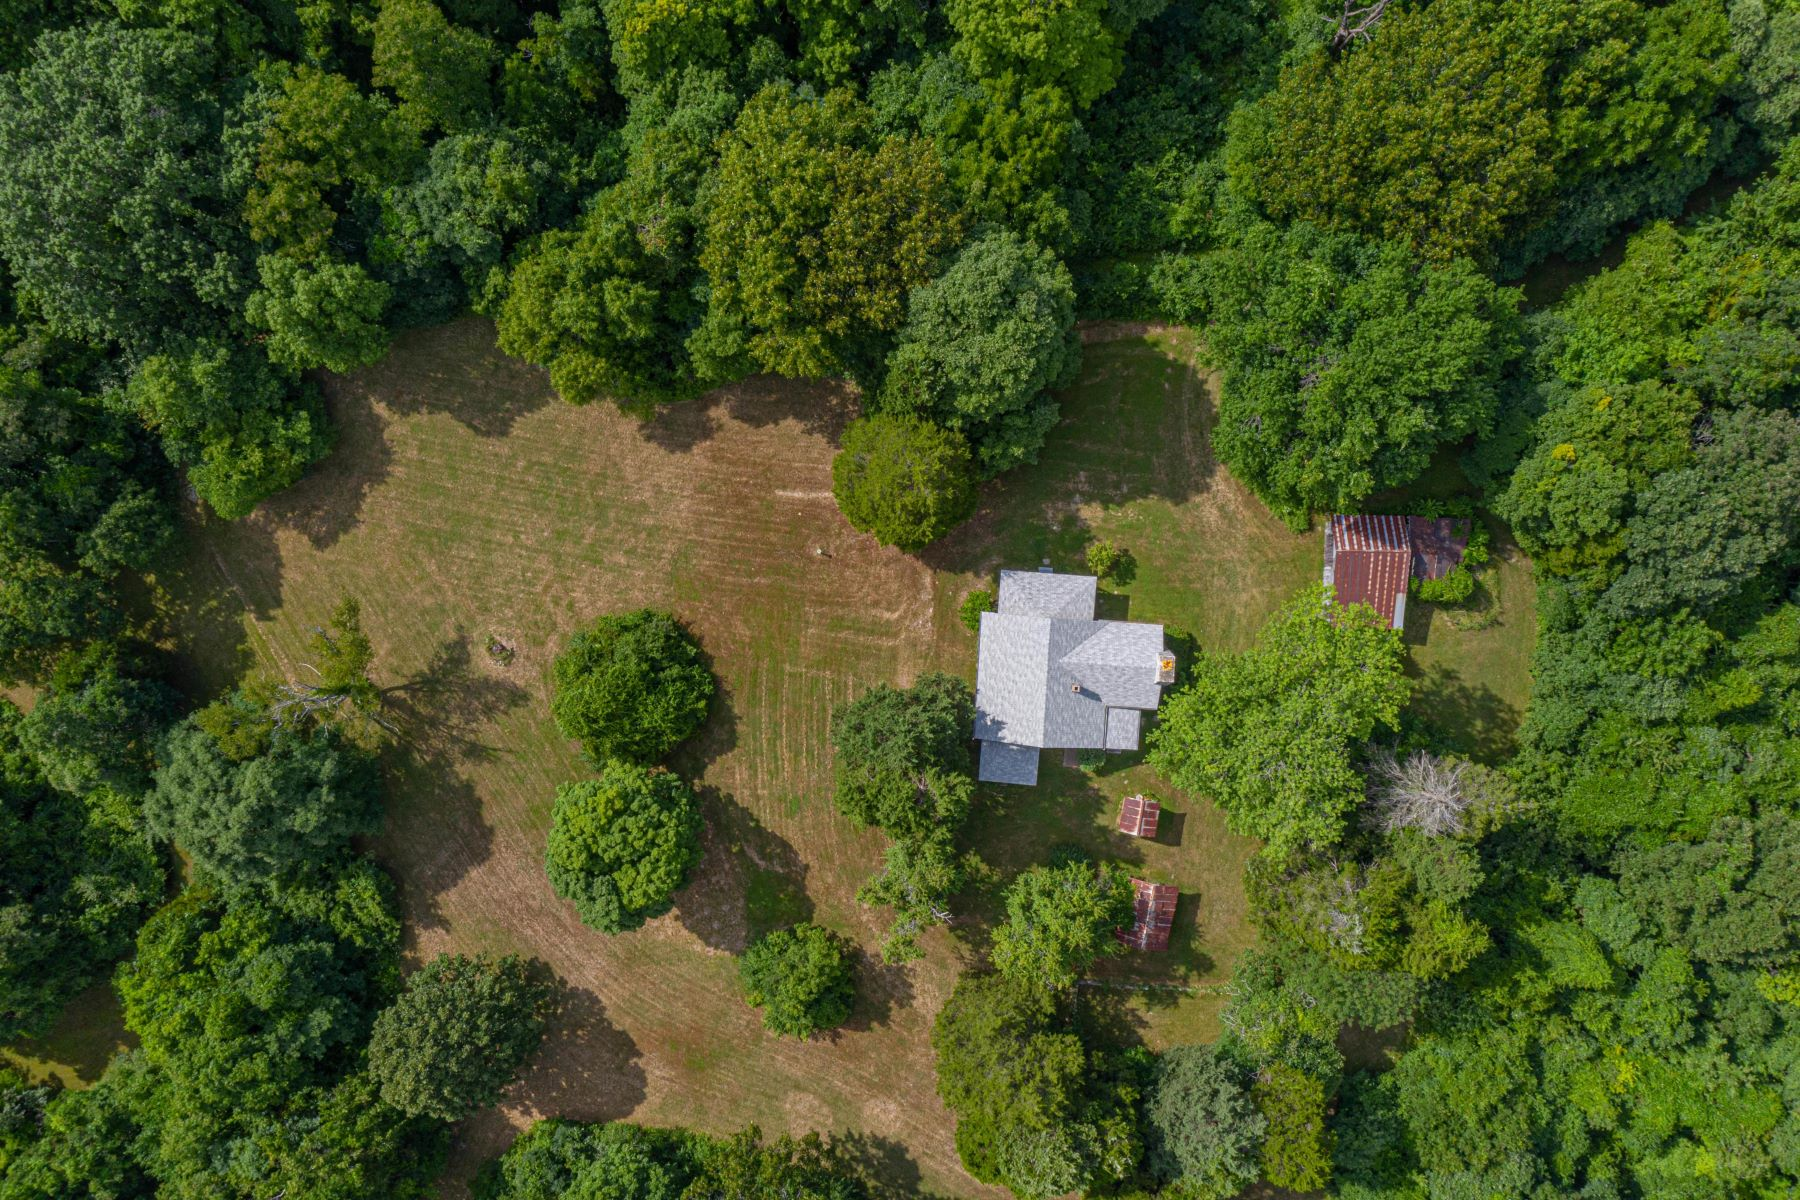 Single Family Homes for Sale at Peaceful Retreat Overlooking Wild Horse Creek Valley 19360 River Ridge Lane Wildwood, Missouri 63005 United States